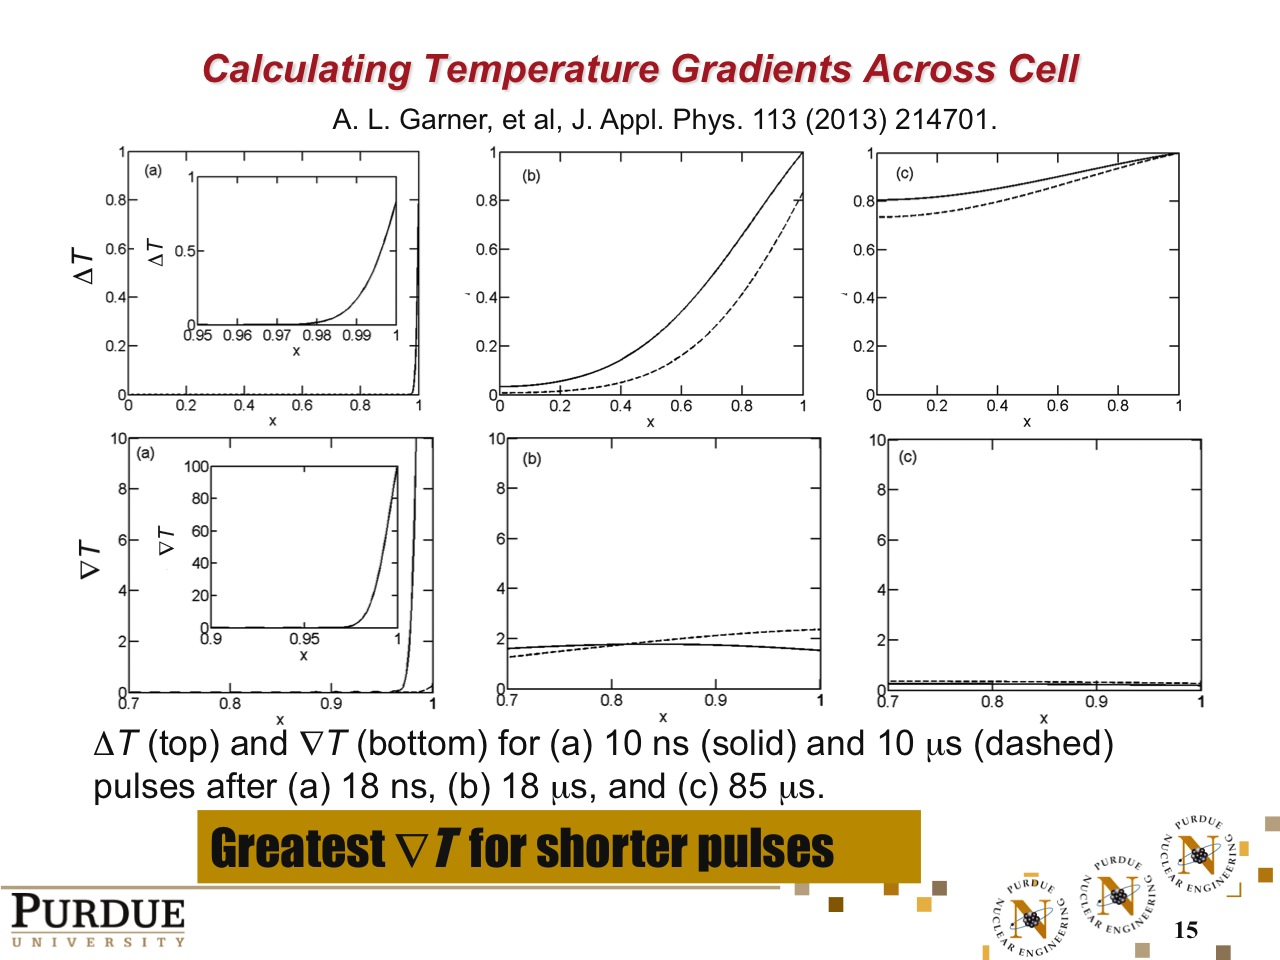 Calculating Temperature Gradients Across Cell